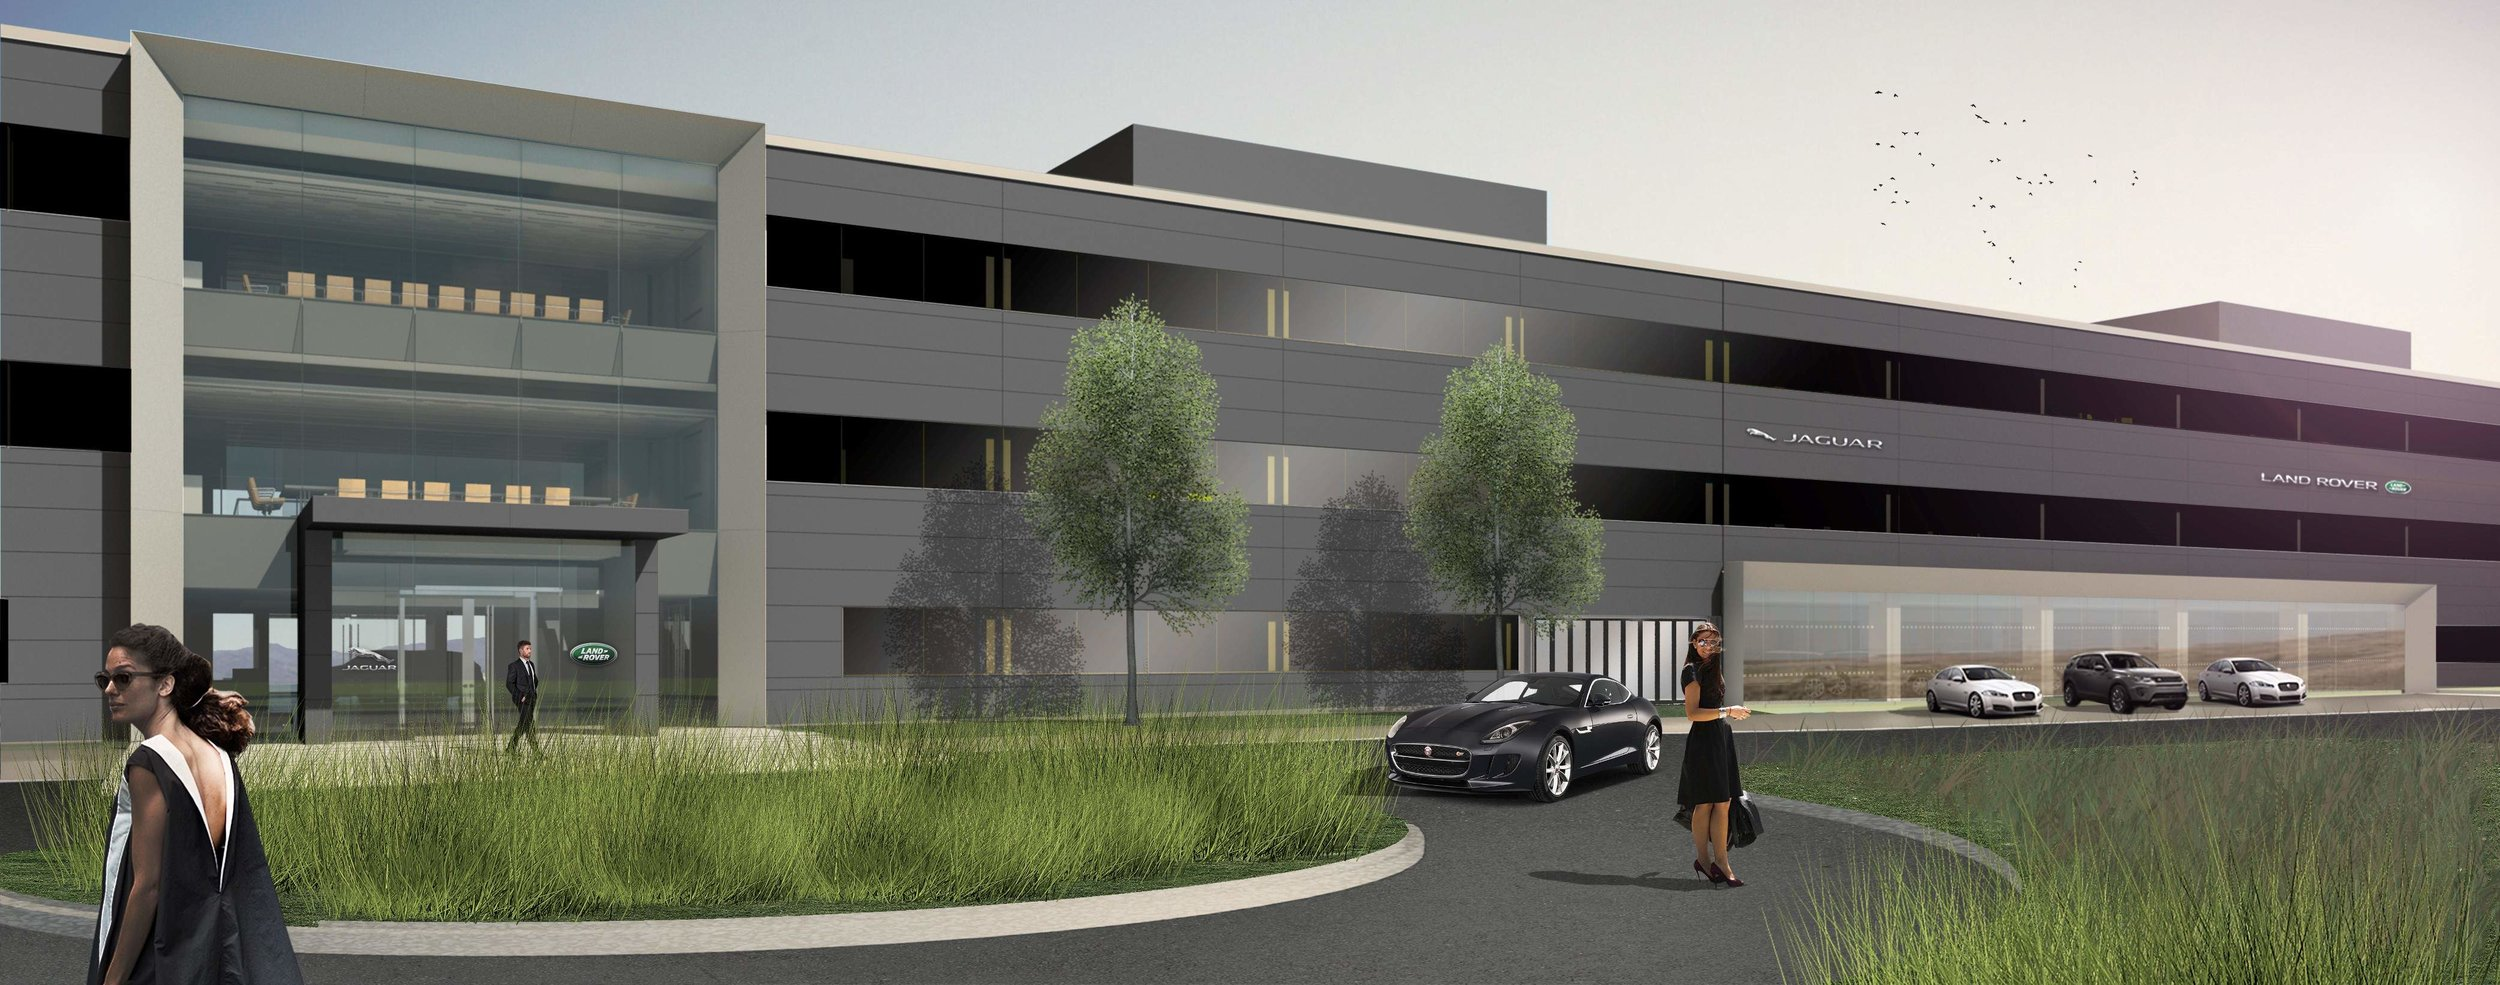 Jaguar s approval to customize expand new Mahwah HQ signs